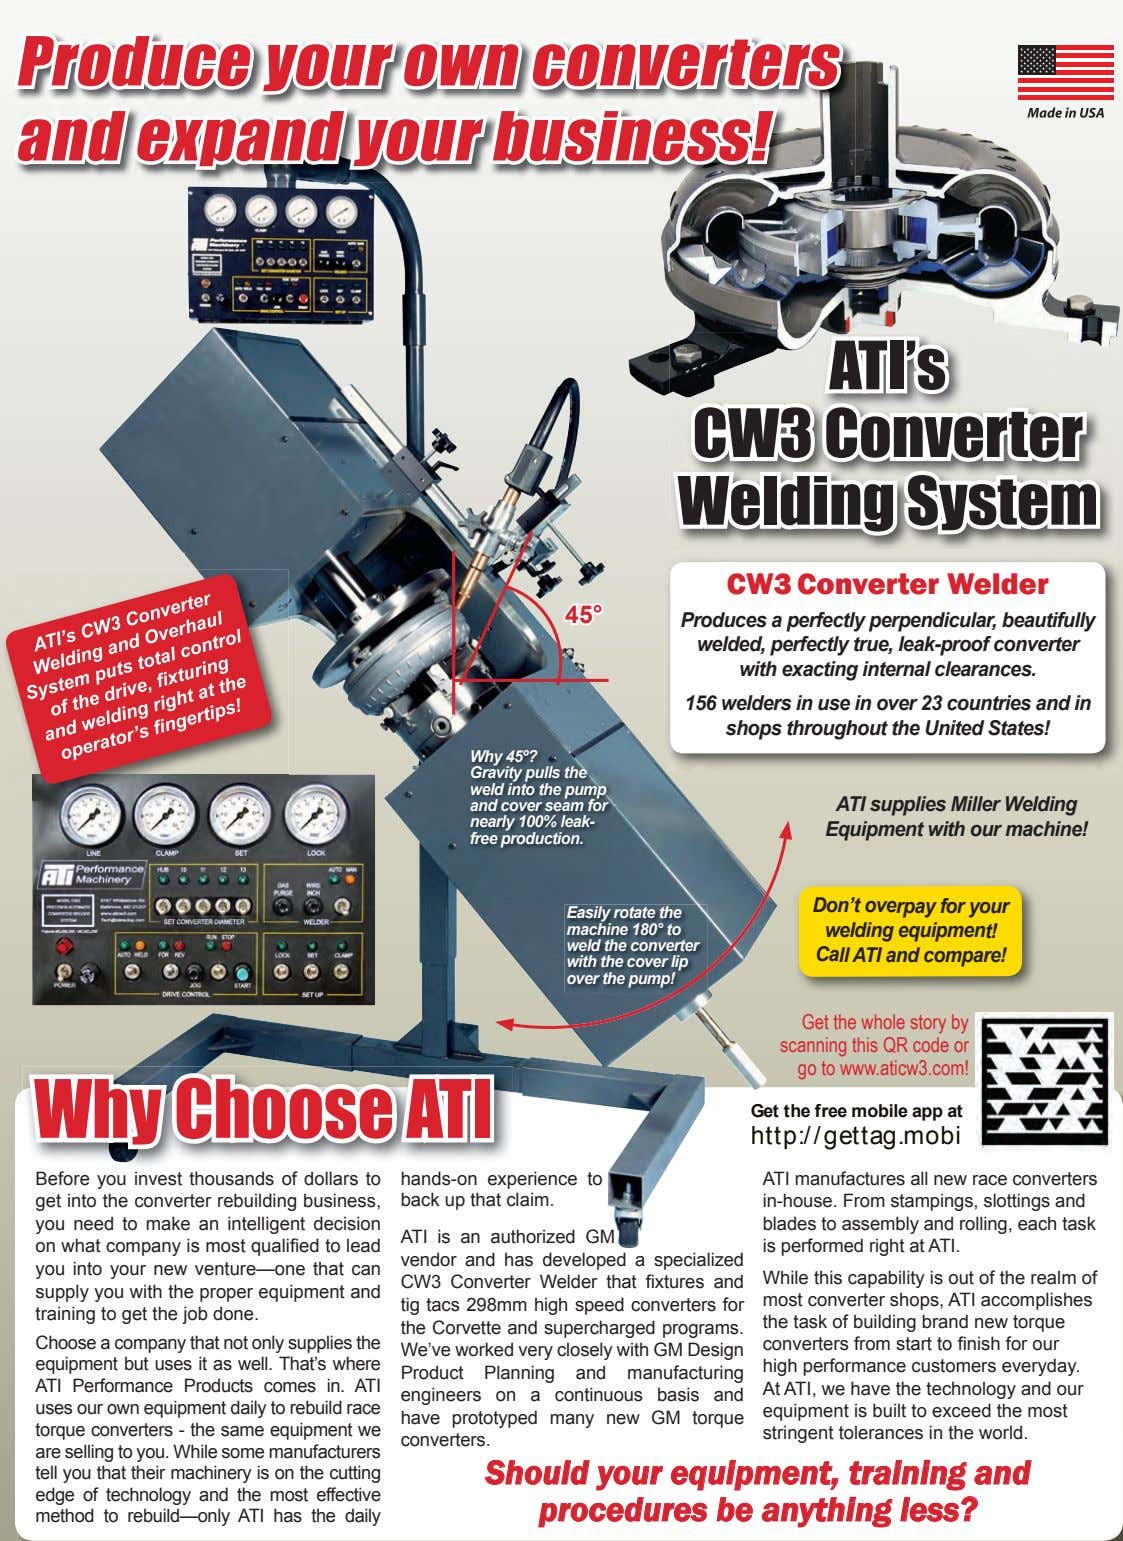 Produce your own converters and expand your business! ATI's CW3 Converter Welding System CW3 Converter